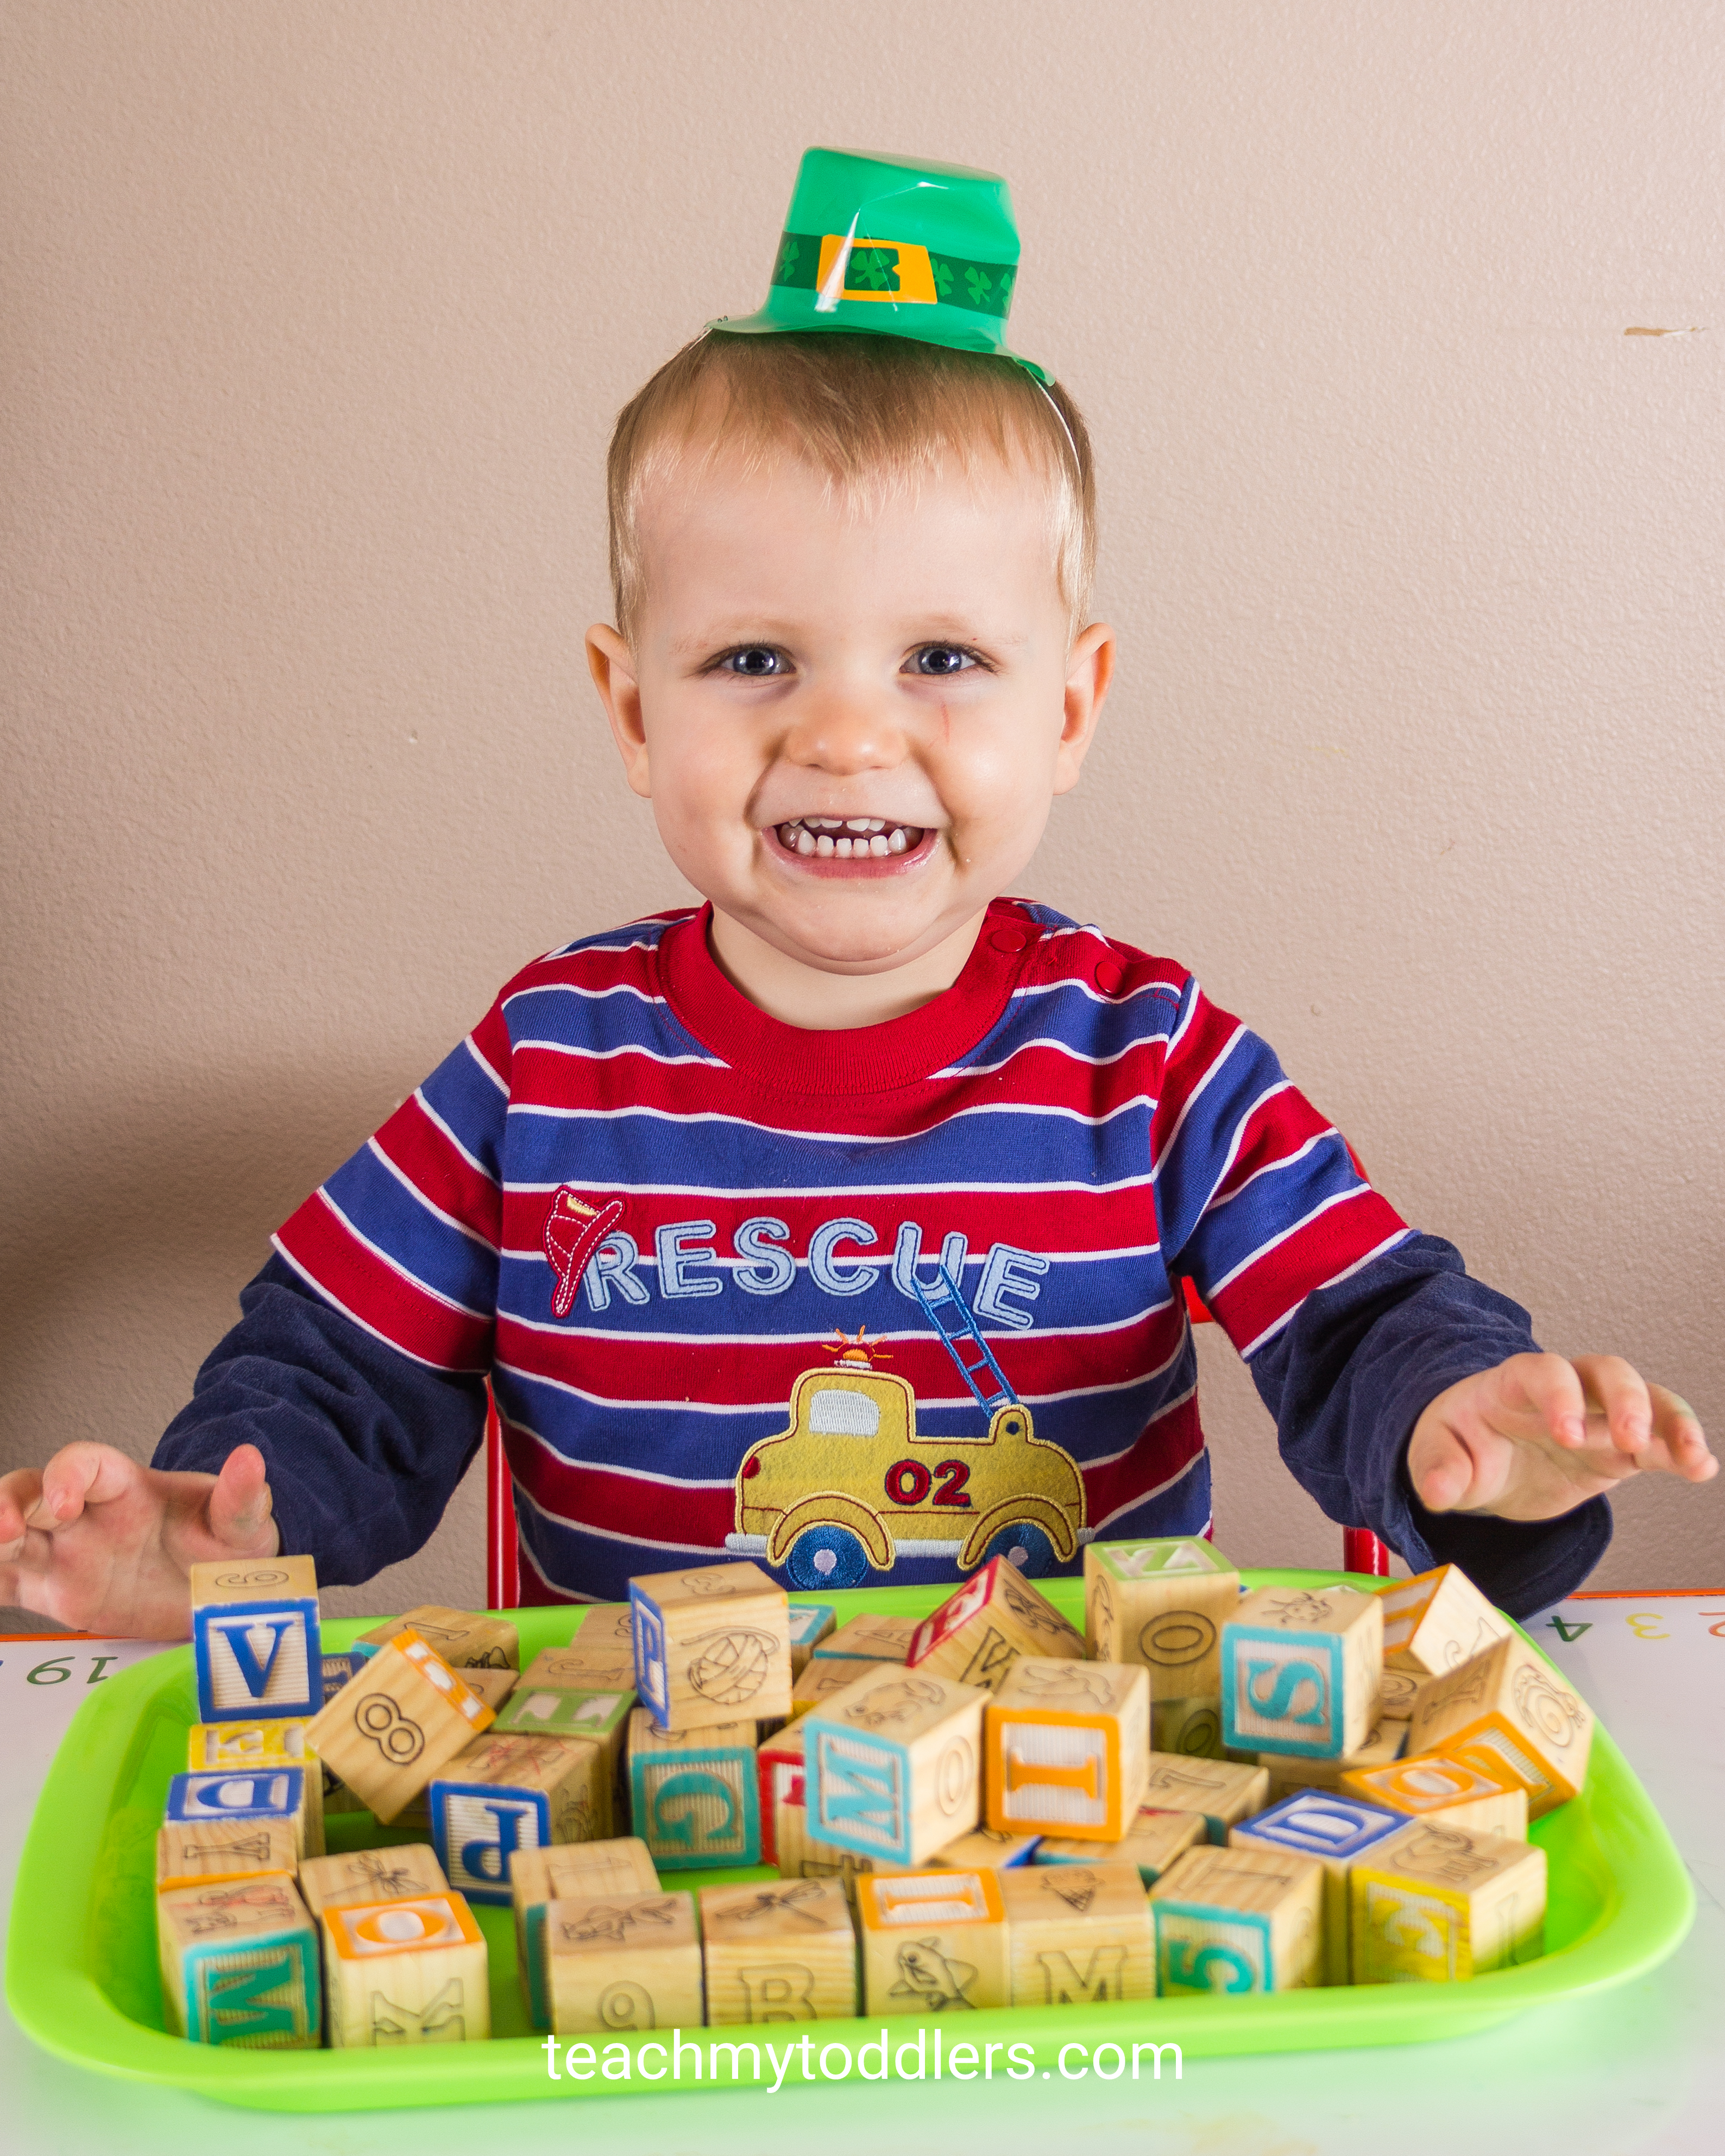 Use these awesome St. Patrick's Day activities to teach your toddlers about st. patrick's day